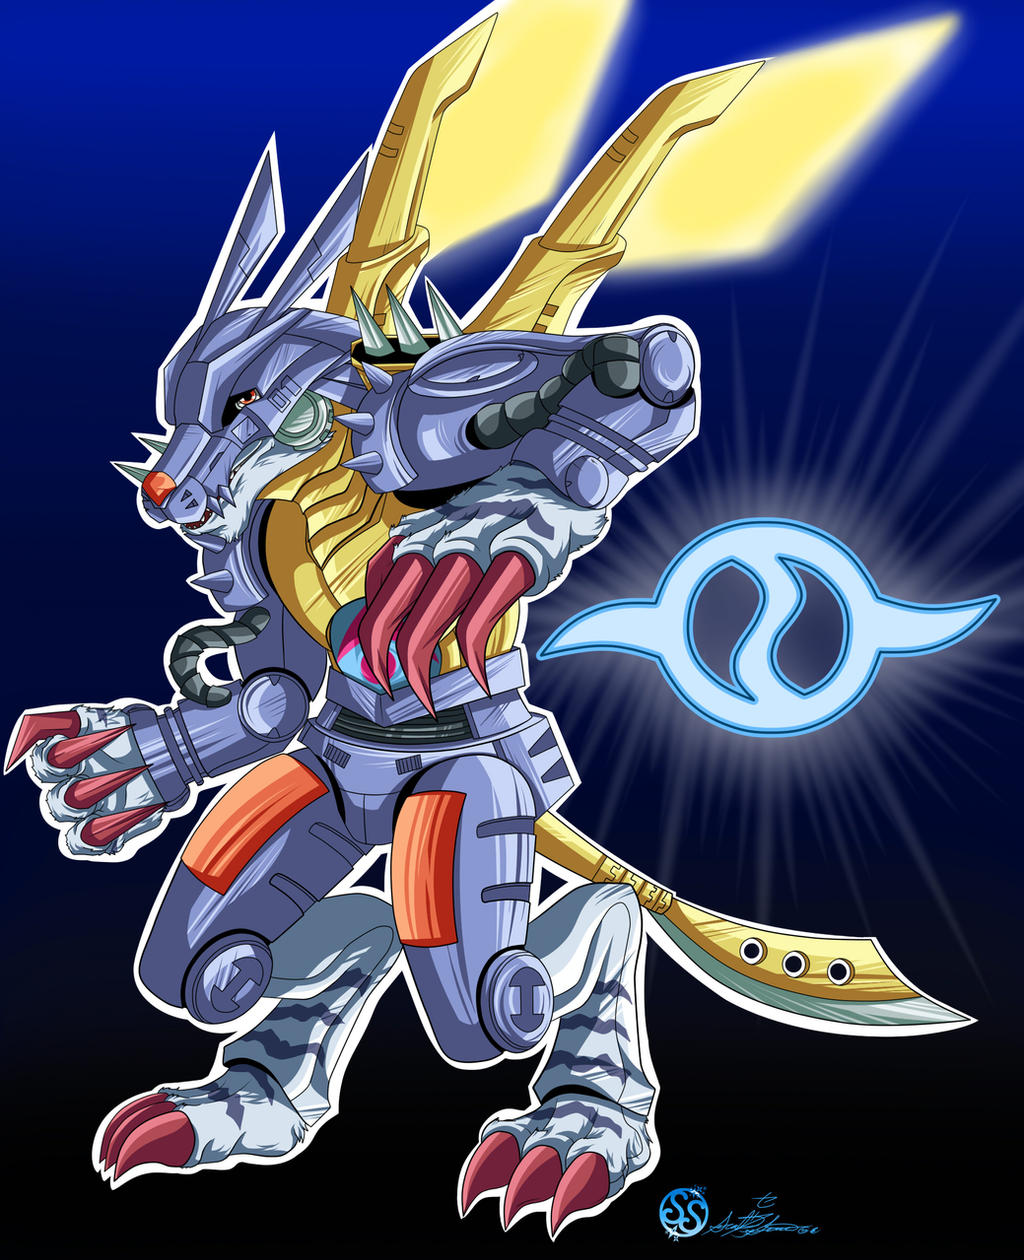 MetalGarurumon Badge by Sarieu on DeviantArt